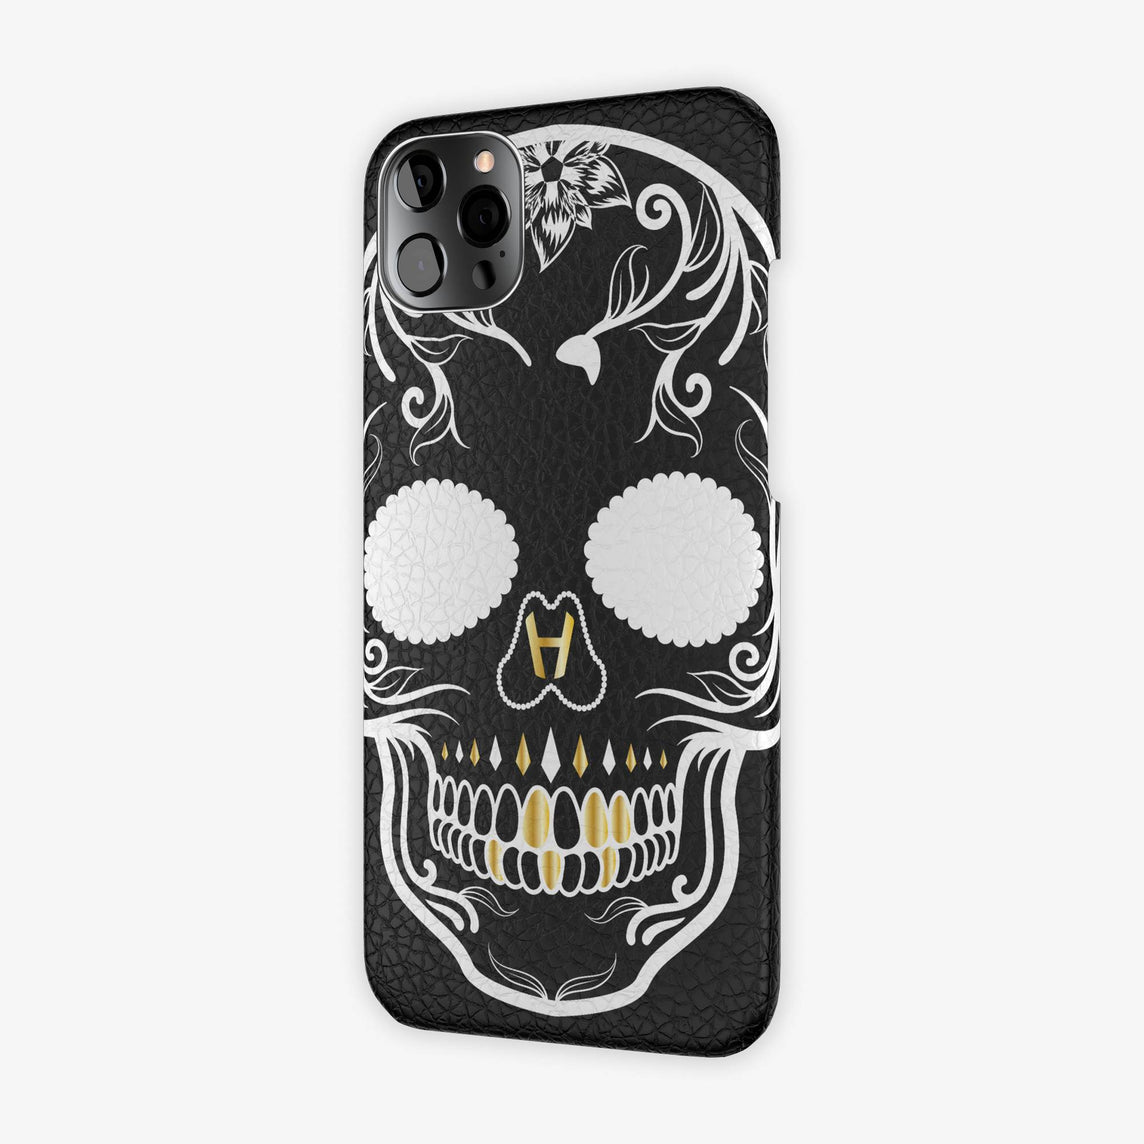 Calfskin Case Skull iPhone 12 Pro Max | White - Stainless Steel